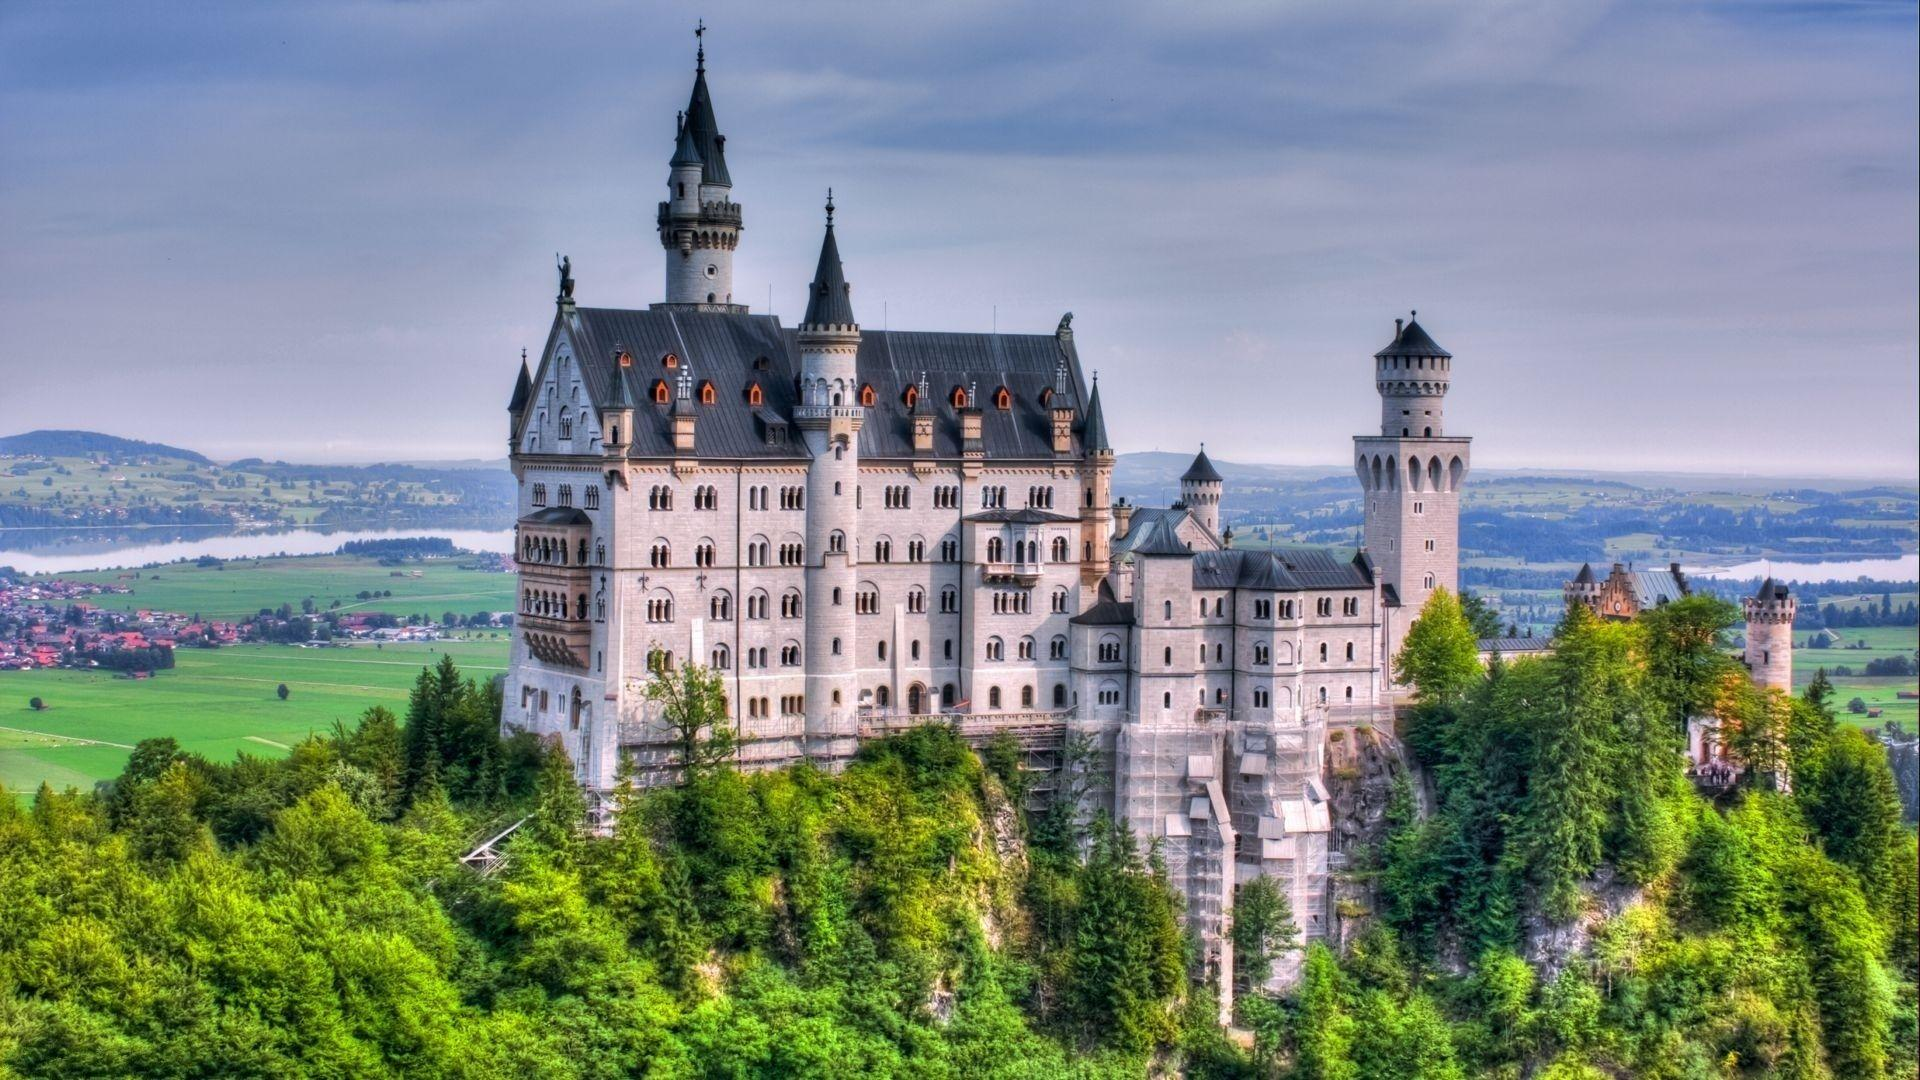 Neuschwanstein Castle Germany Wallpapers